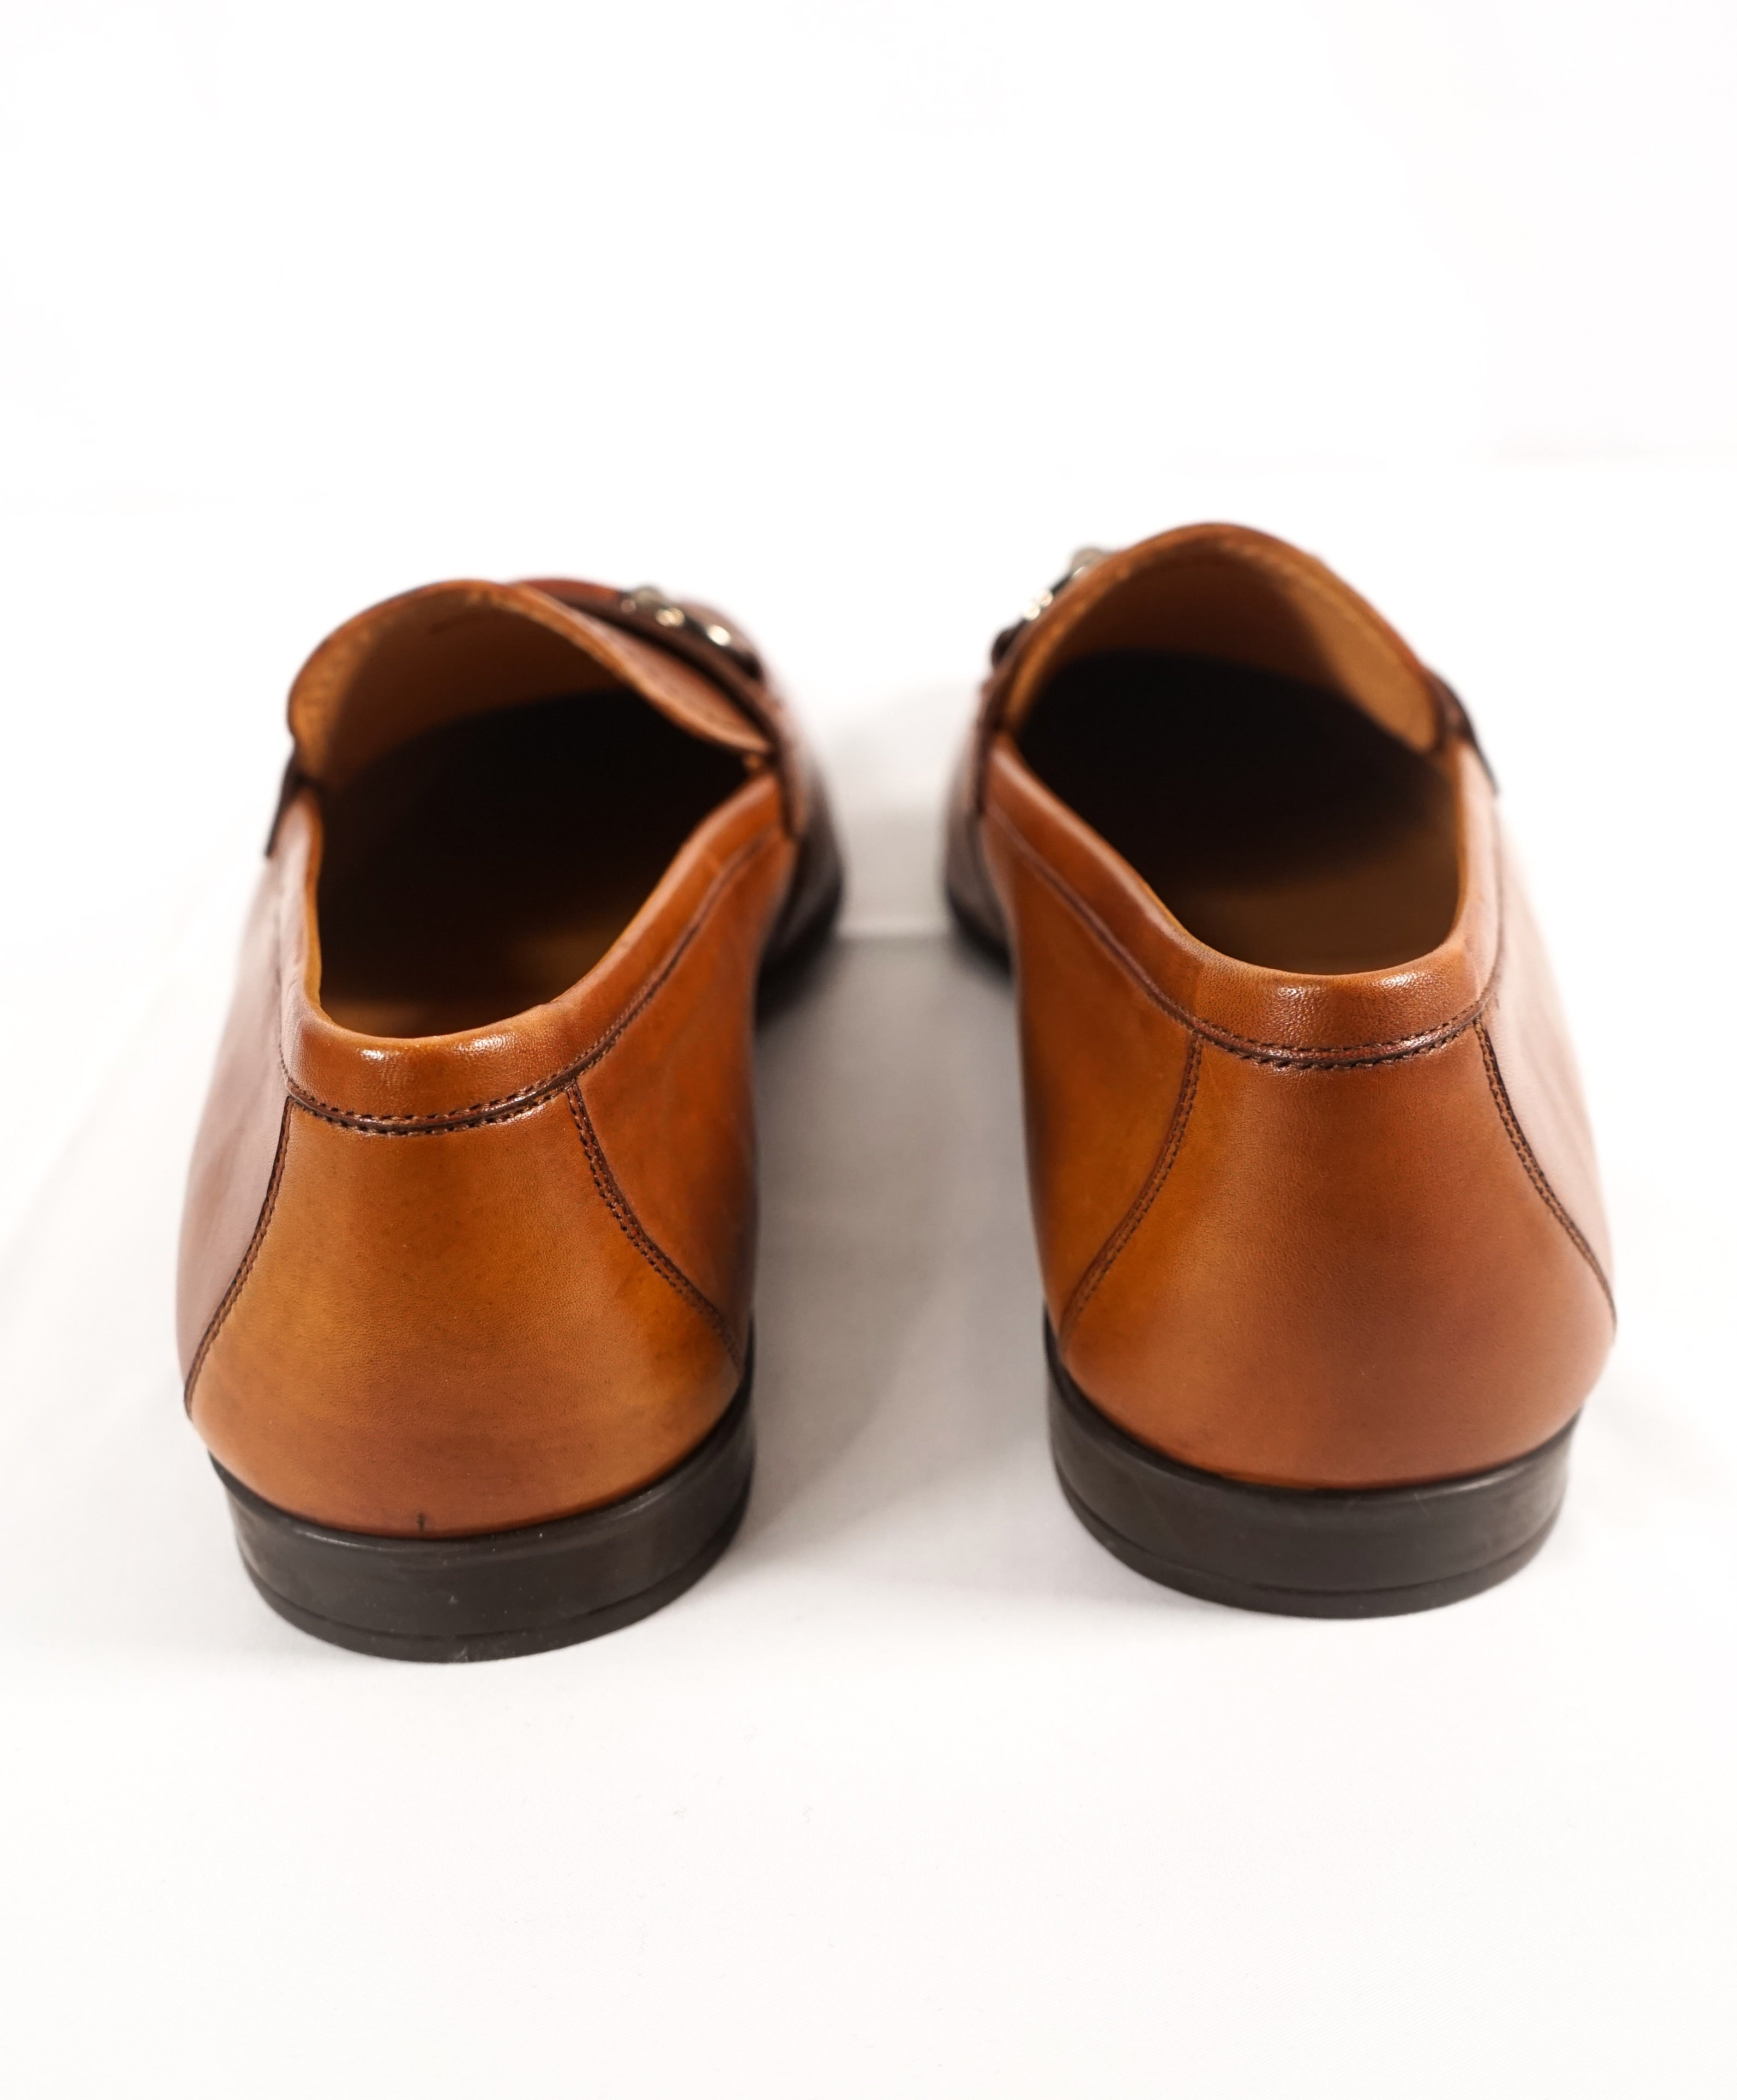 MAGNANNI - Smooth Brown Bit Leather Loafers W Rubber Sole - 9